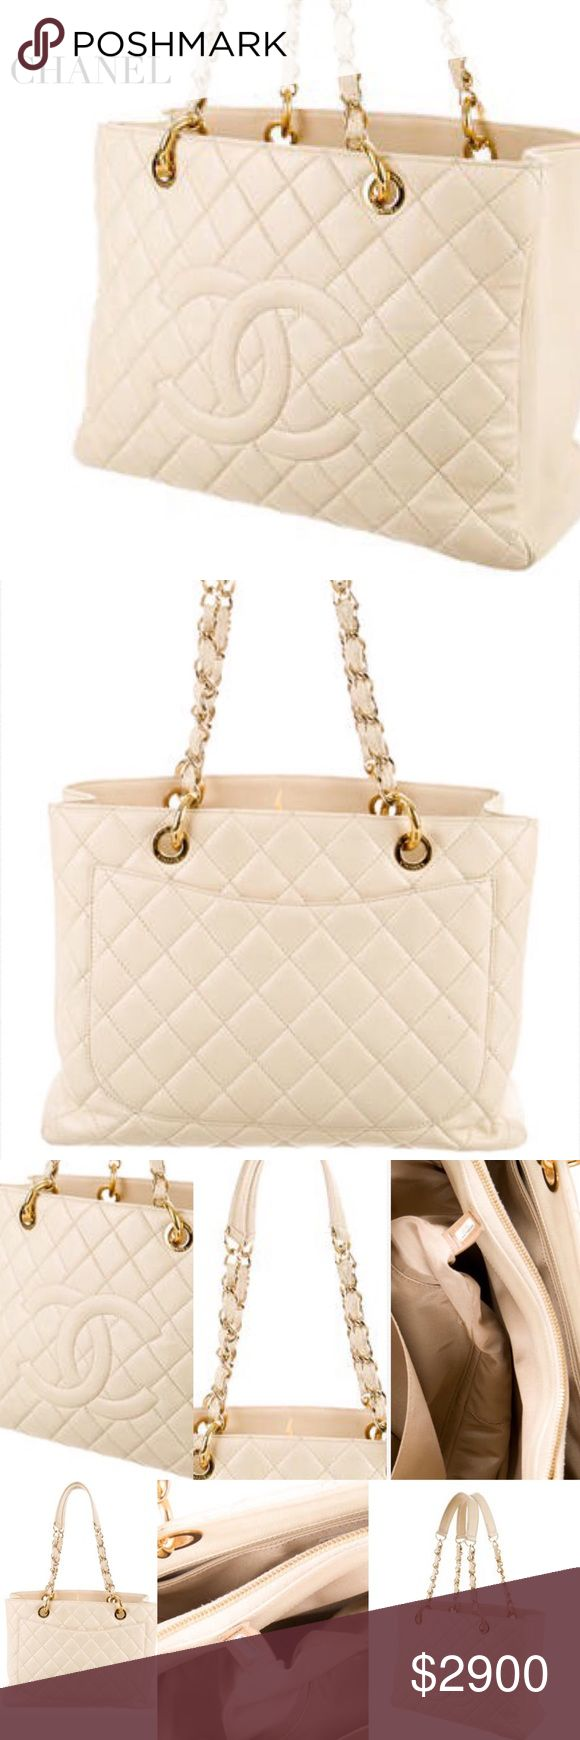 "Chanel Grand Shopping Cream Quilted Leather Chanel Grand Shopping quilted caviar leather tote w gold-tone hardware, dual chain-link & leather shoulder straps, embossed CC logo at front face, ext pocket, beige grosgrain lining, dual pockets at int wall; 1 features zip close, mid zip compartment & open top. Approx Measurements: Shoulder Drop 10"", H: 10.5"", W: 14"", D: 5.5"" Condition: Excellent! All pics show condition wear at ext/int; faint hardware surface scratches. Posh will authenticate for…"